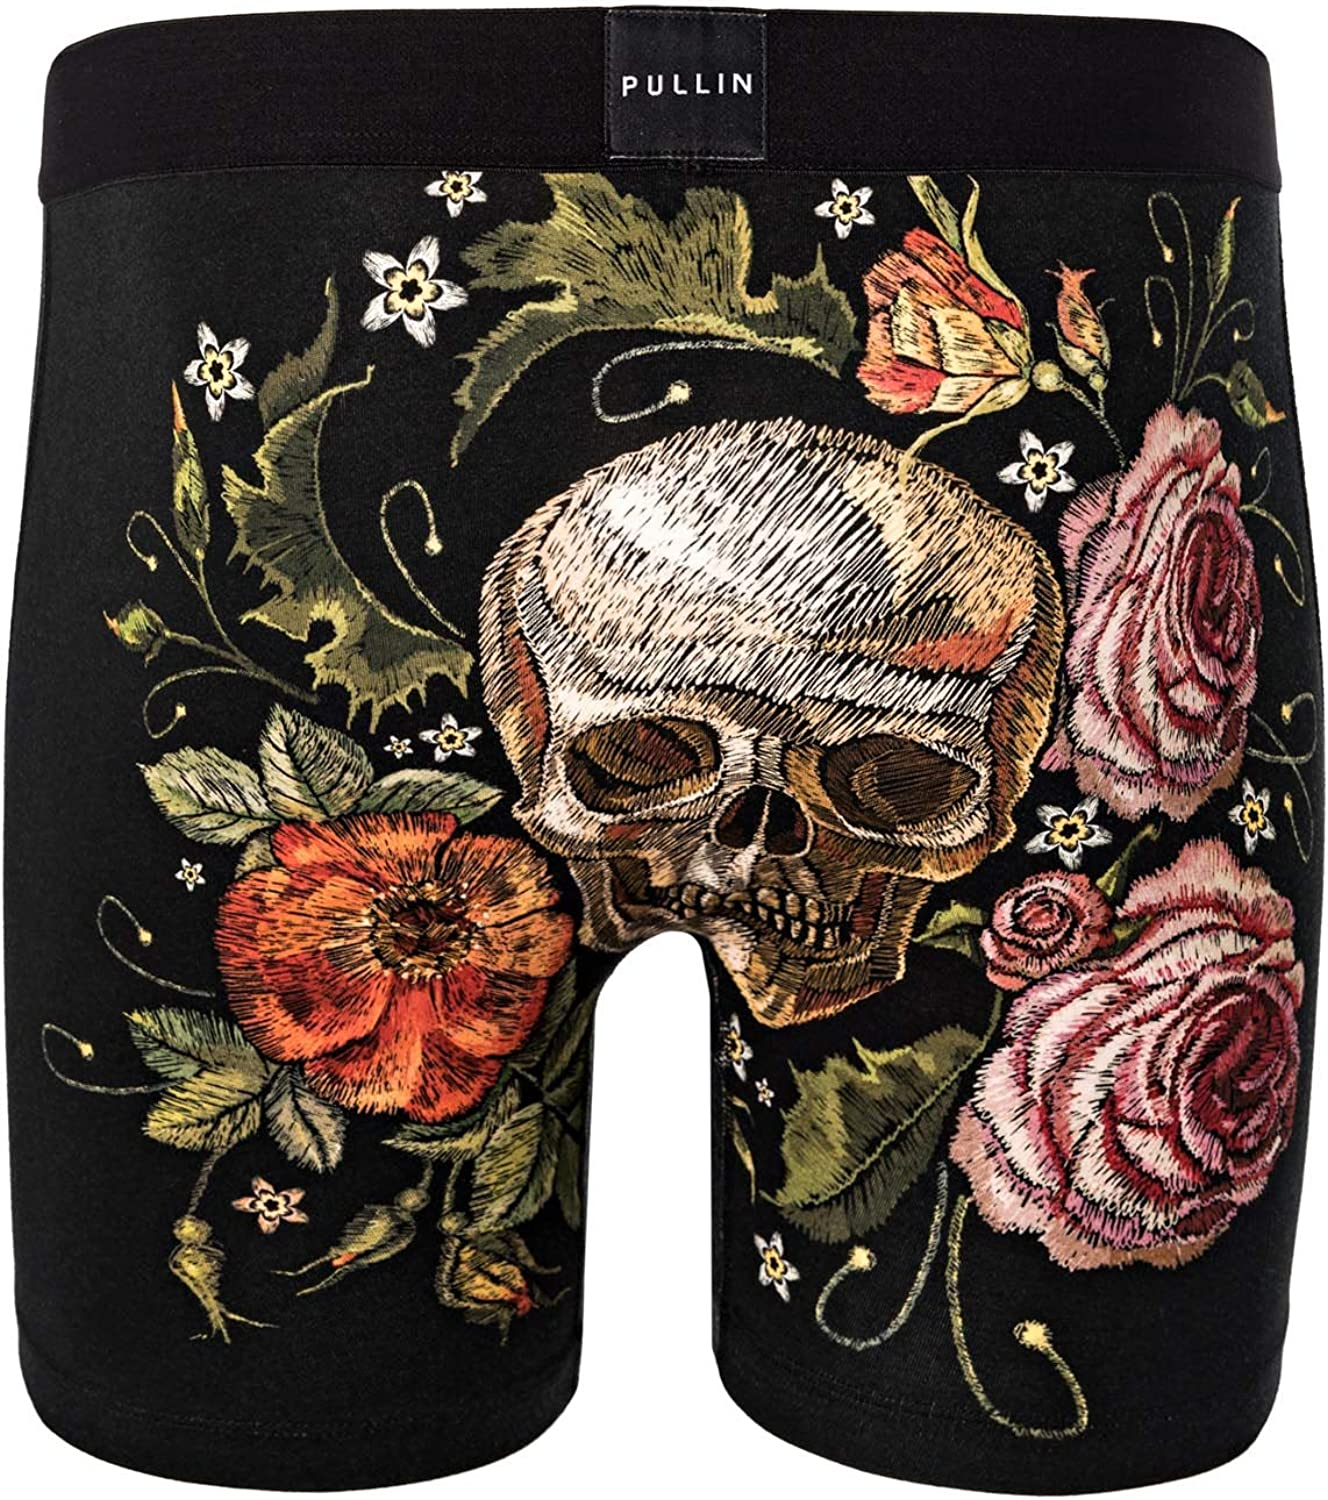 PULLIN Mens Trunk Fashion 2 Printed Cotton SKULLEMBY